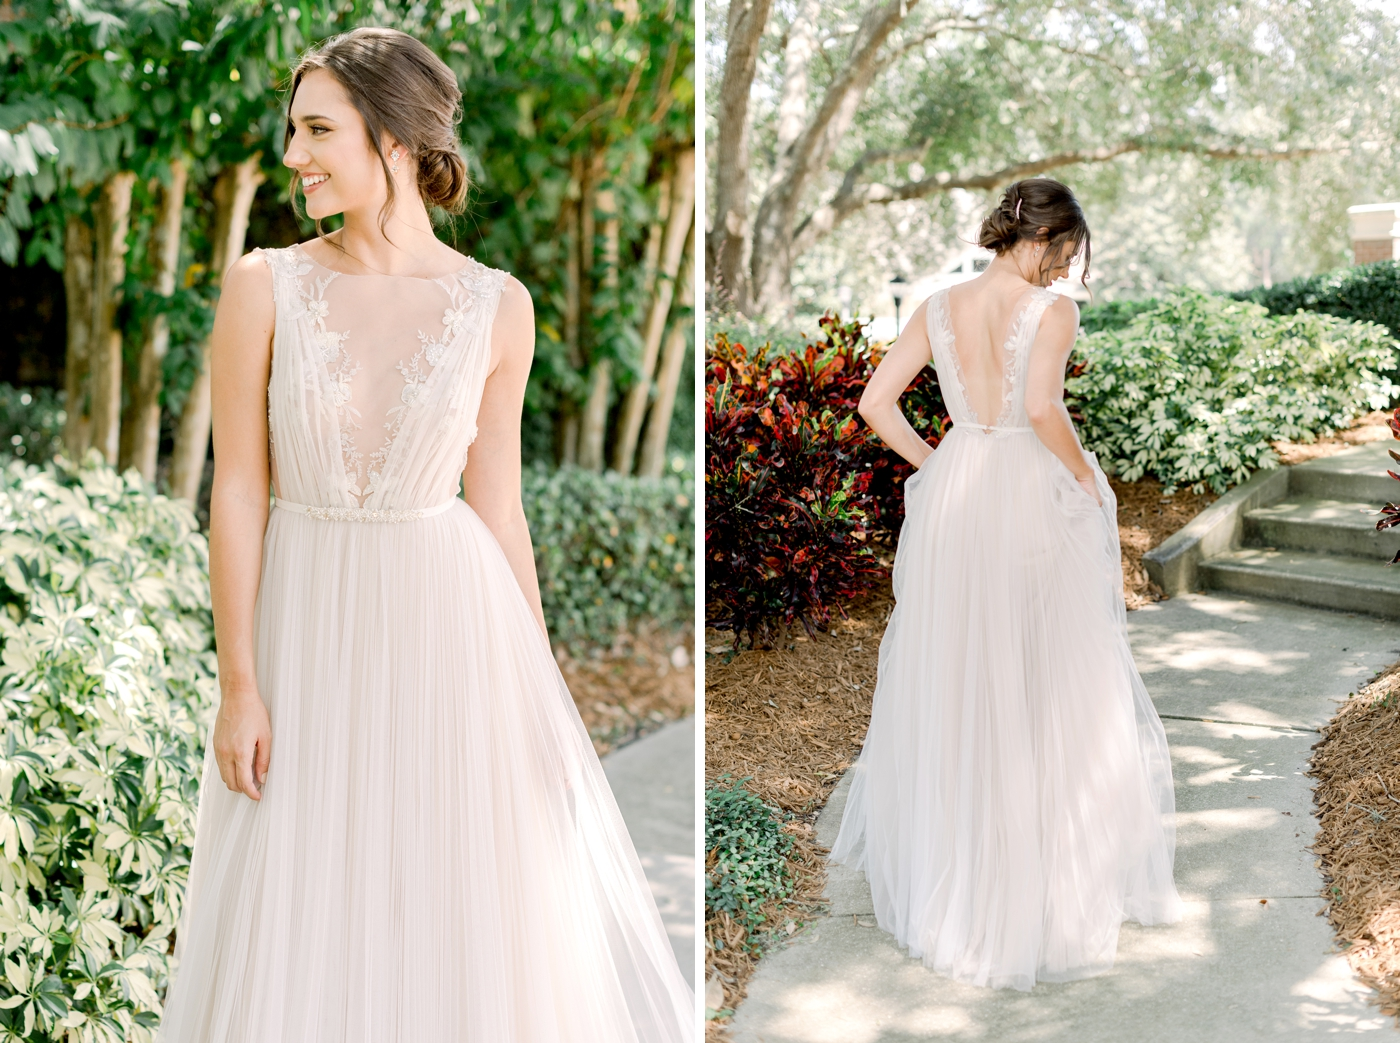 bridal finery wedding dress